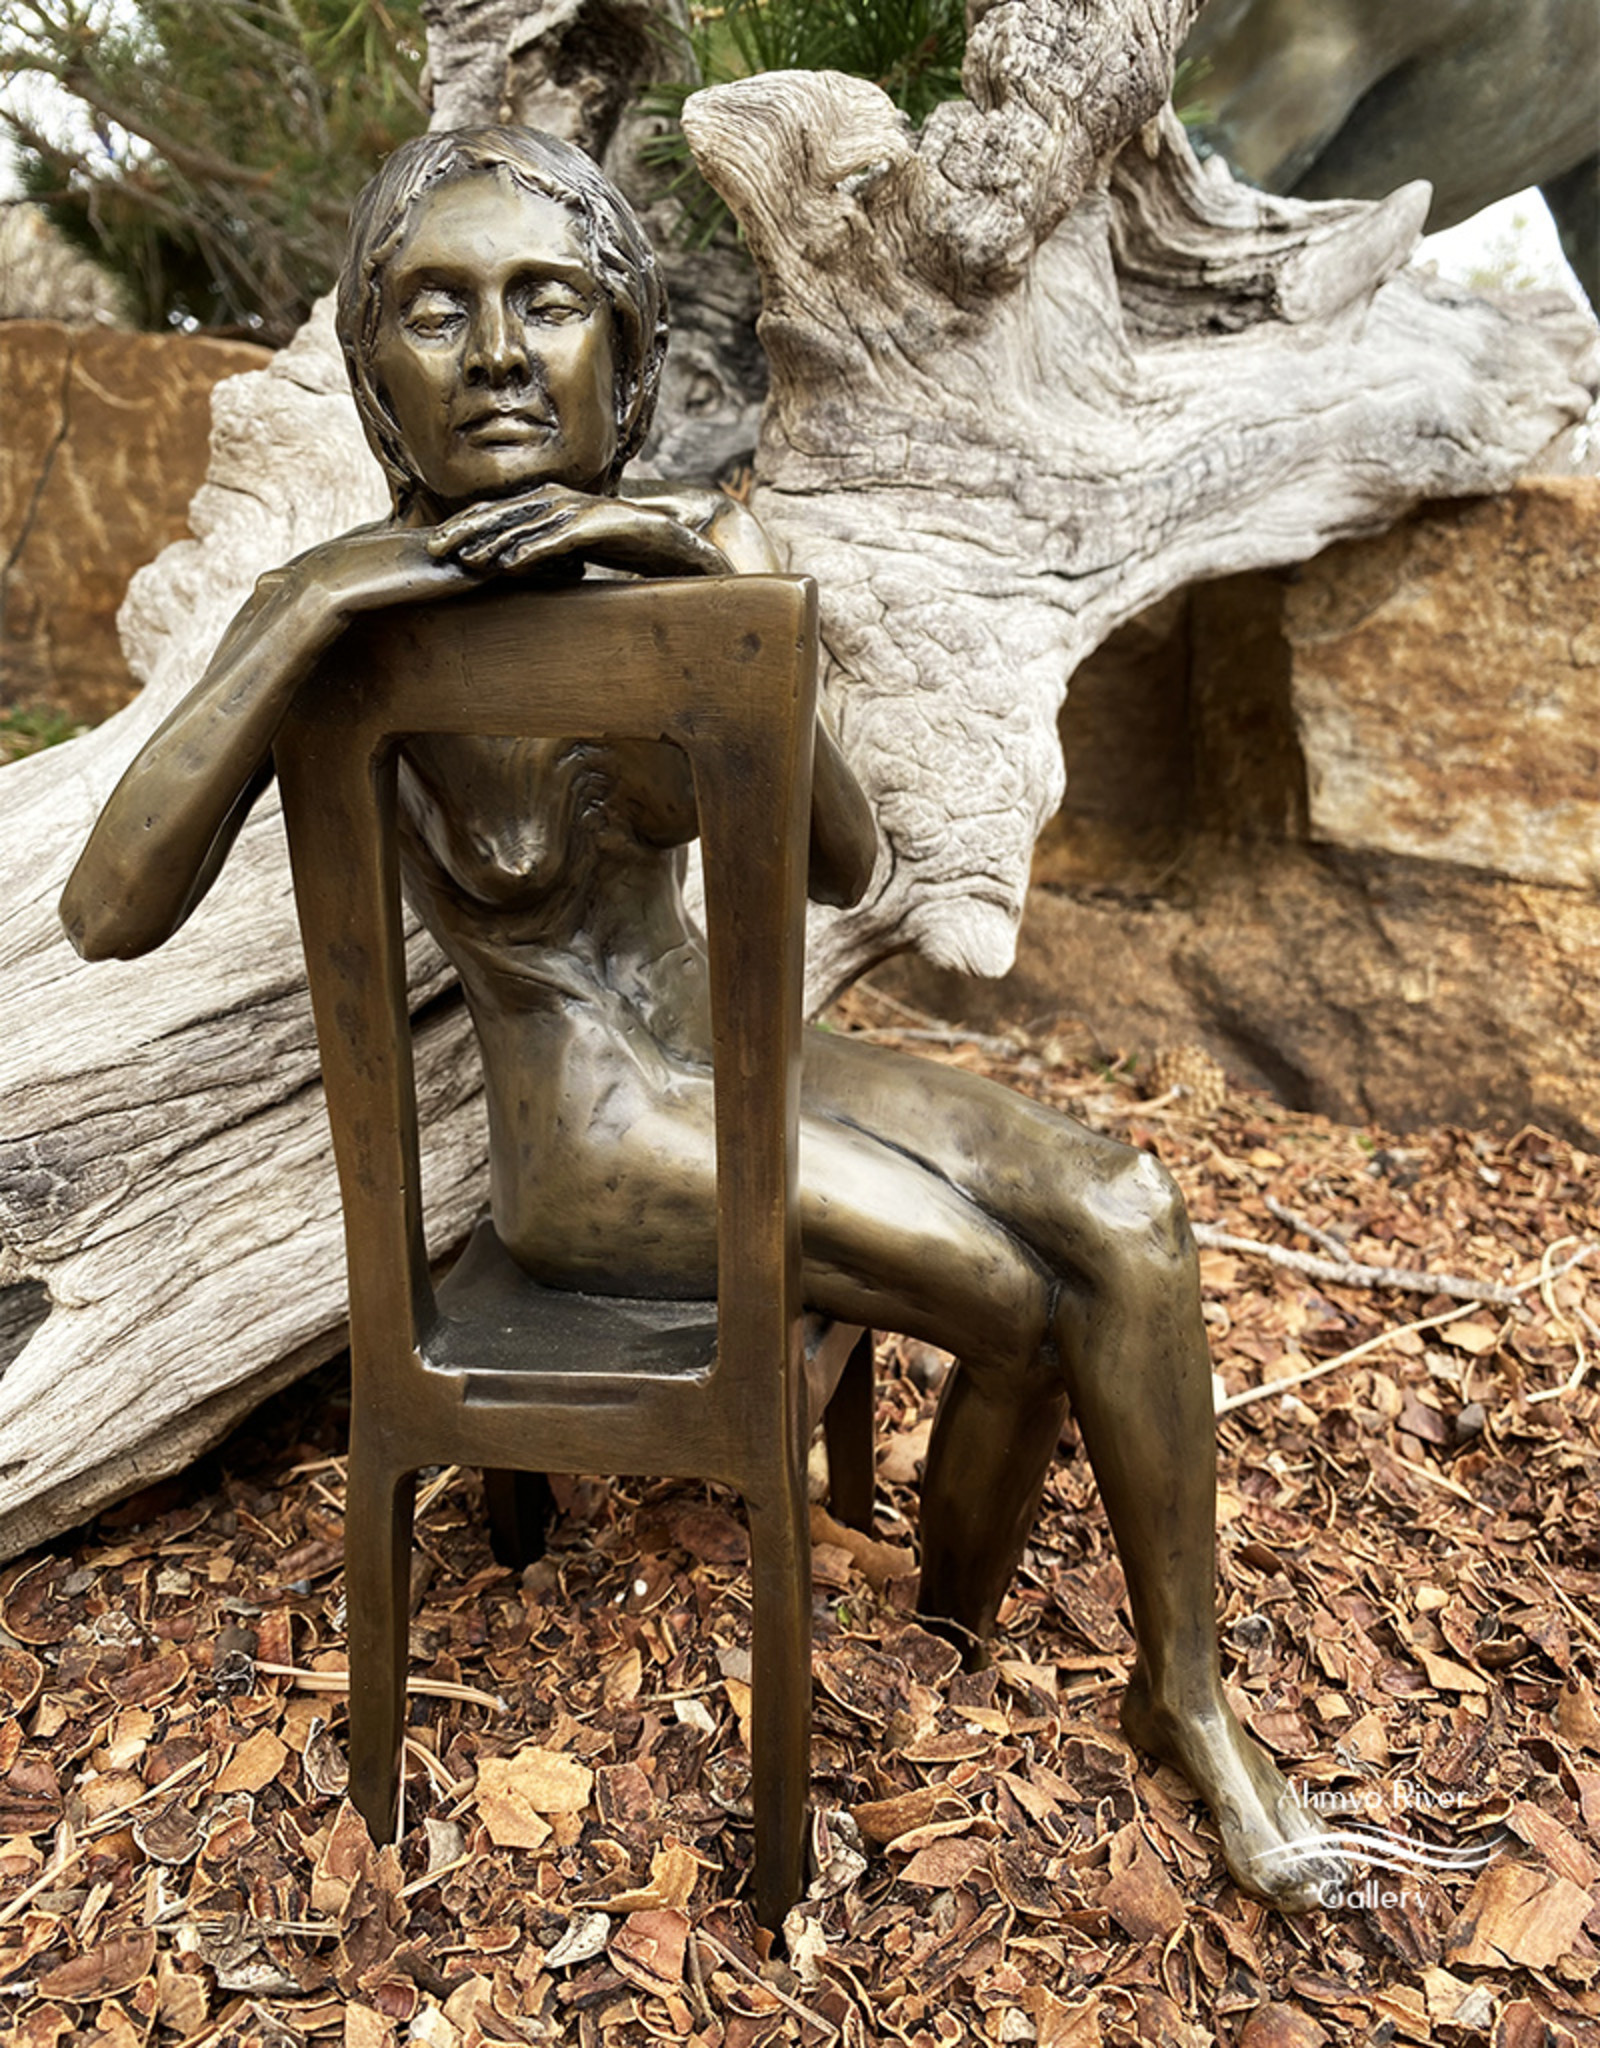 Marianne Hornbuckle Lost in Thought - Marianne Hornbuckle